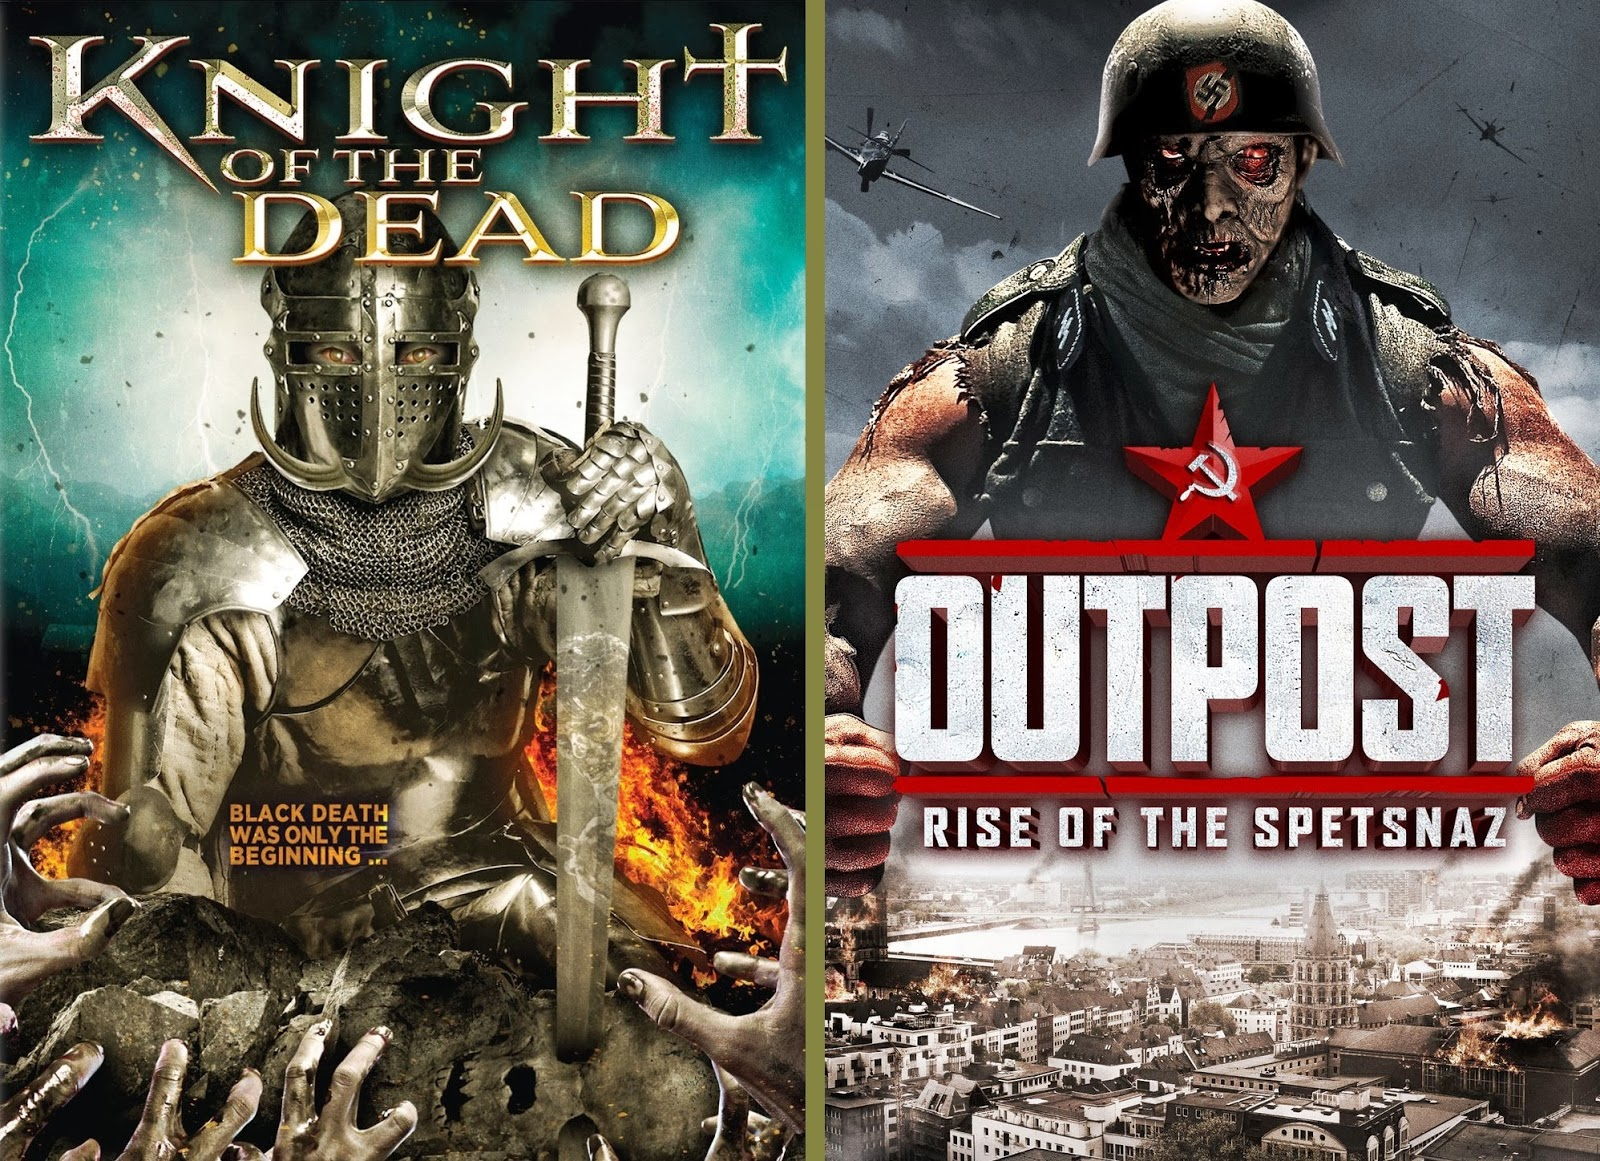 Knight of the Dead & Outpost: Rise of the Spetsnaz